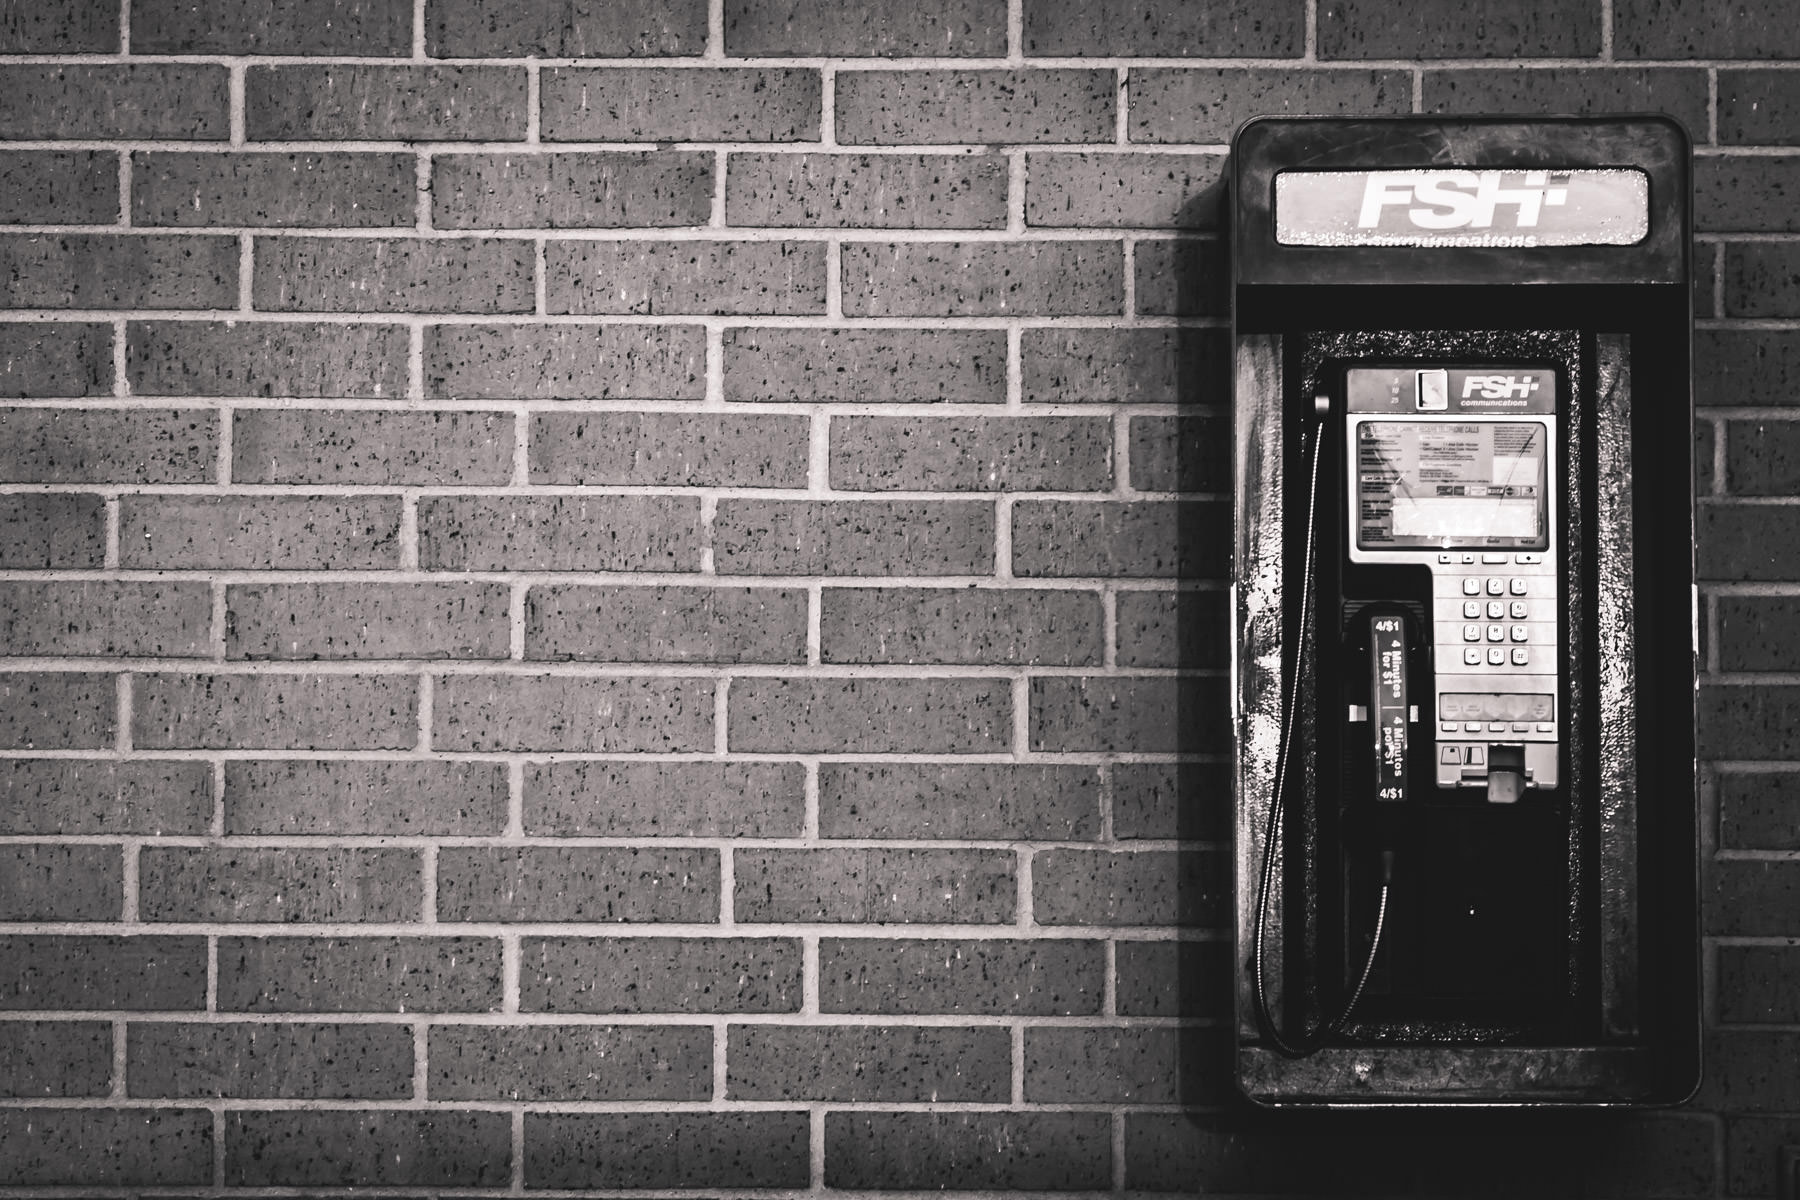 A payphone on the side of a building somewhere in Dallas.